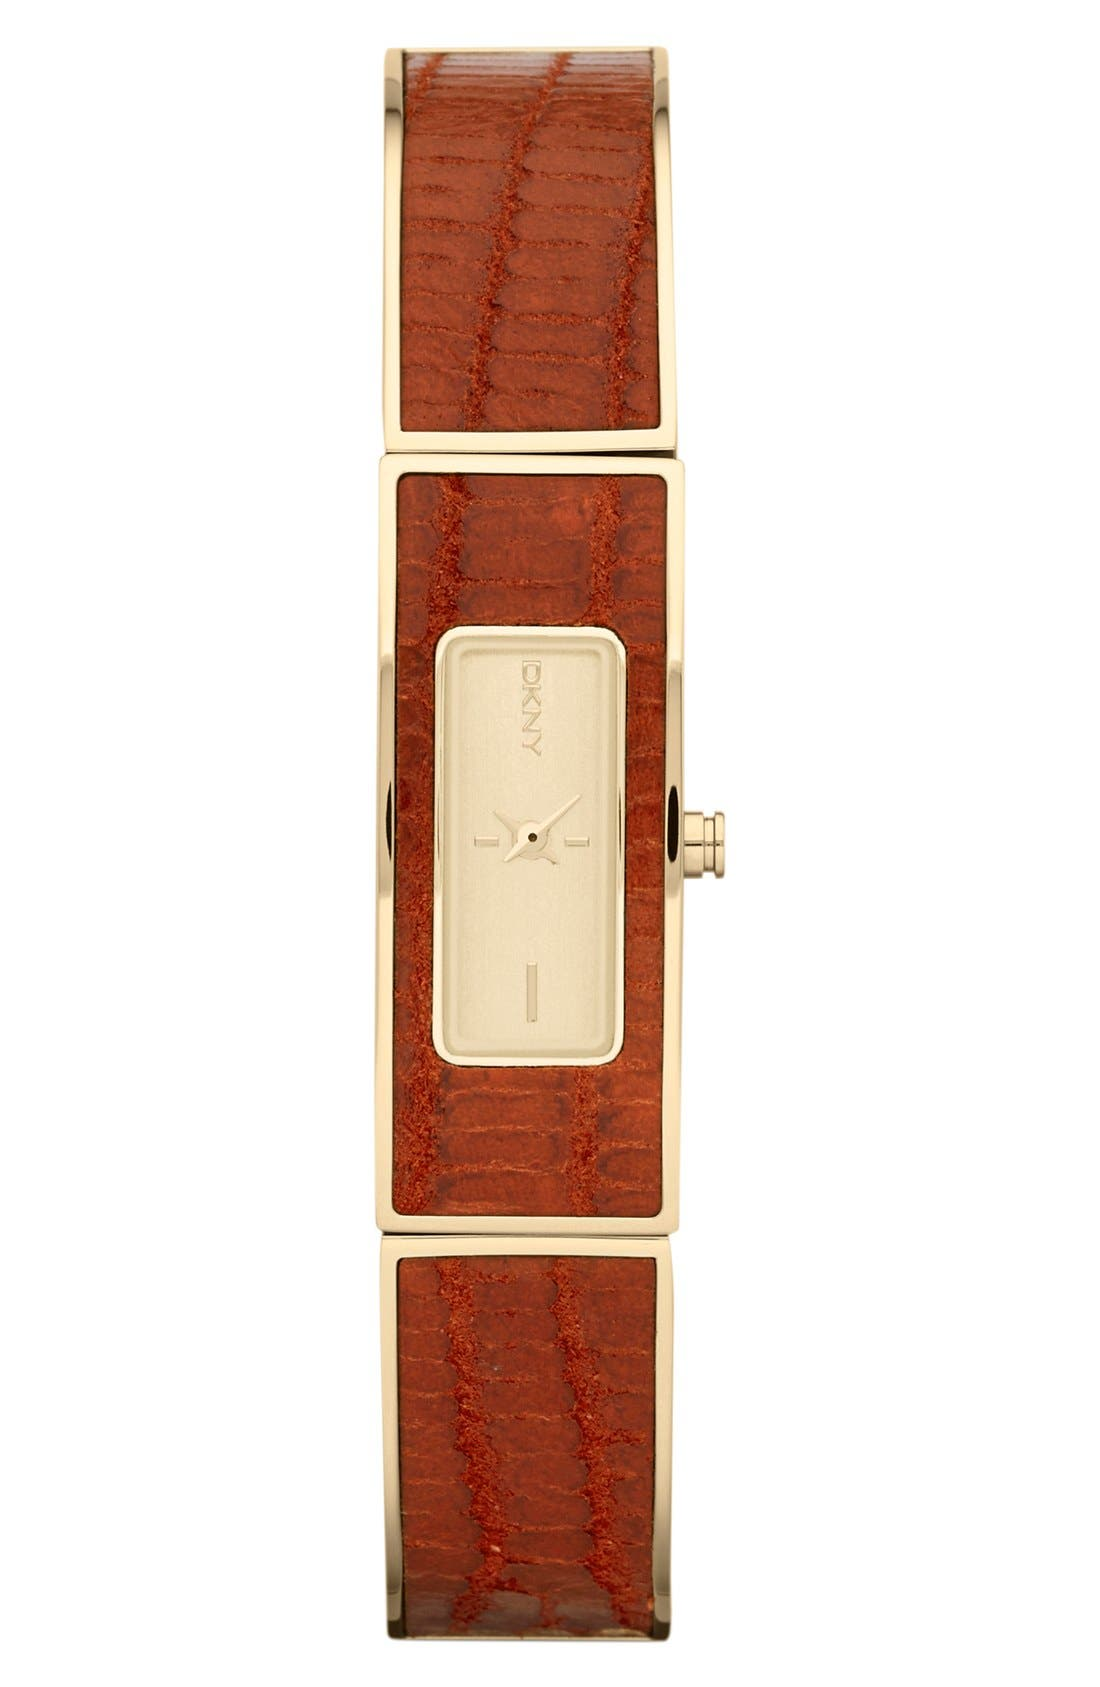 Alternate Image 1 Selected - DKNY Leather Bangle Watch, 13mm x 33mm